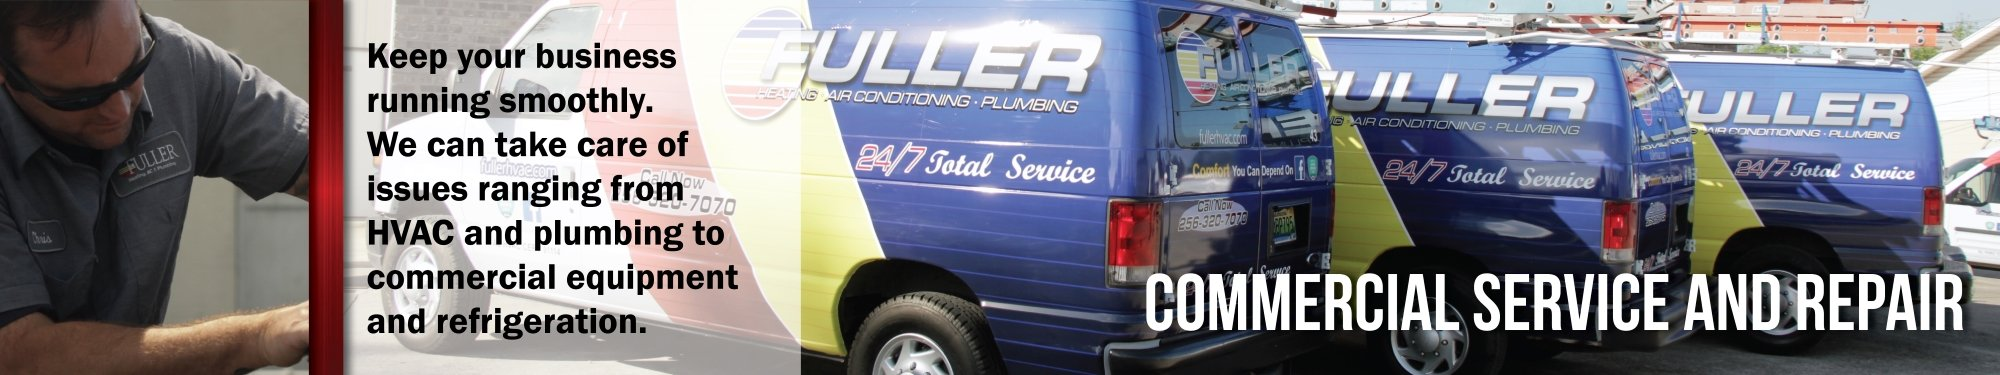 Fuller will take care of your commercial Furnace issues in Muscle Shoals AL